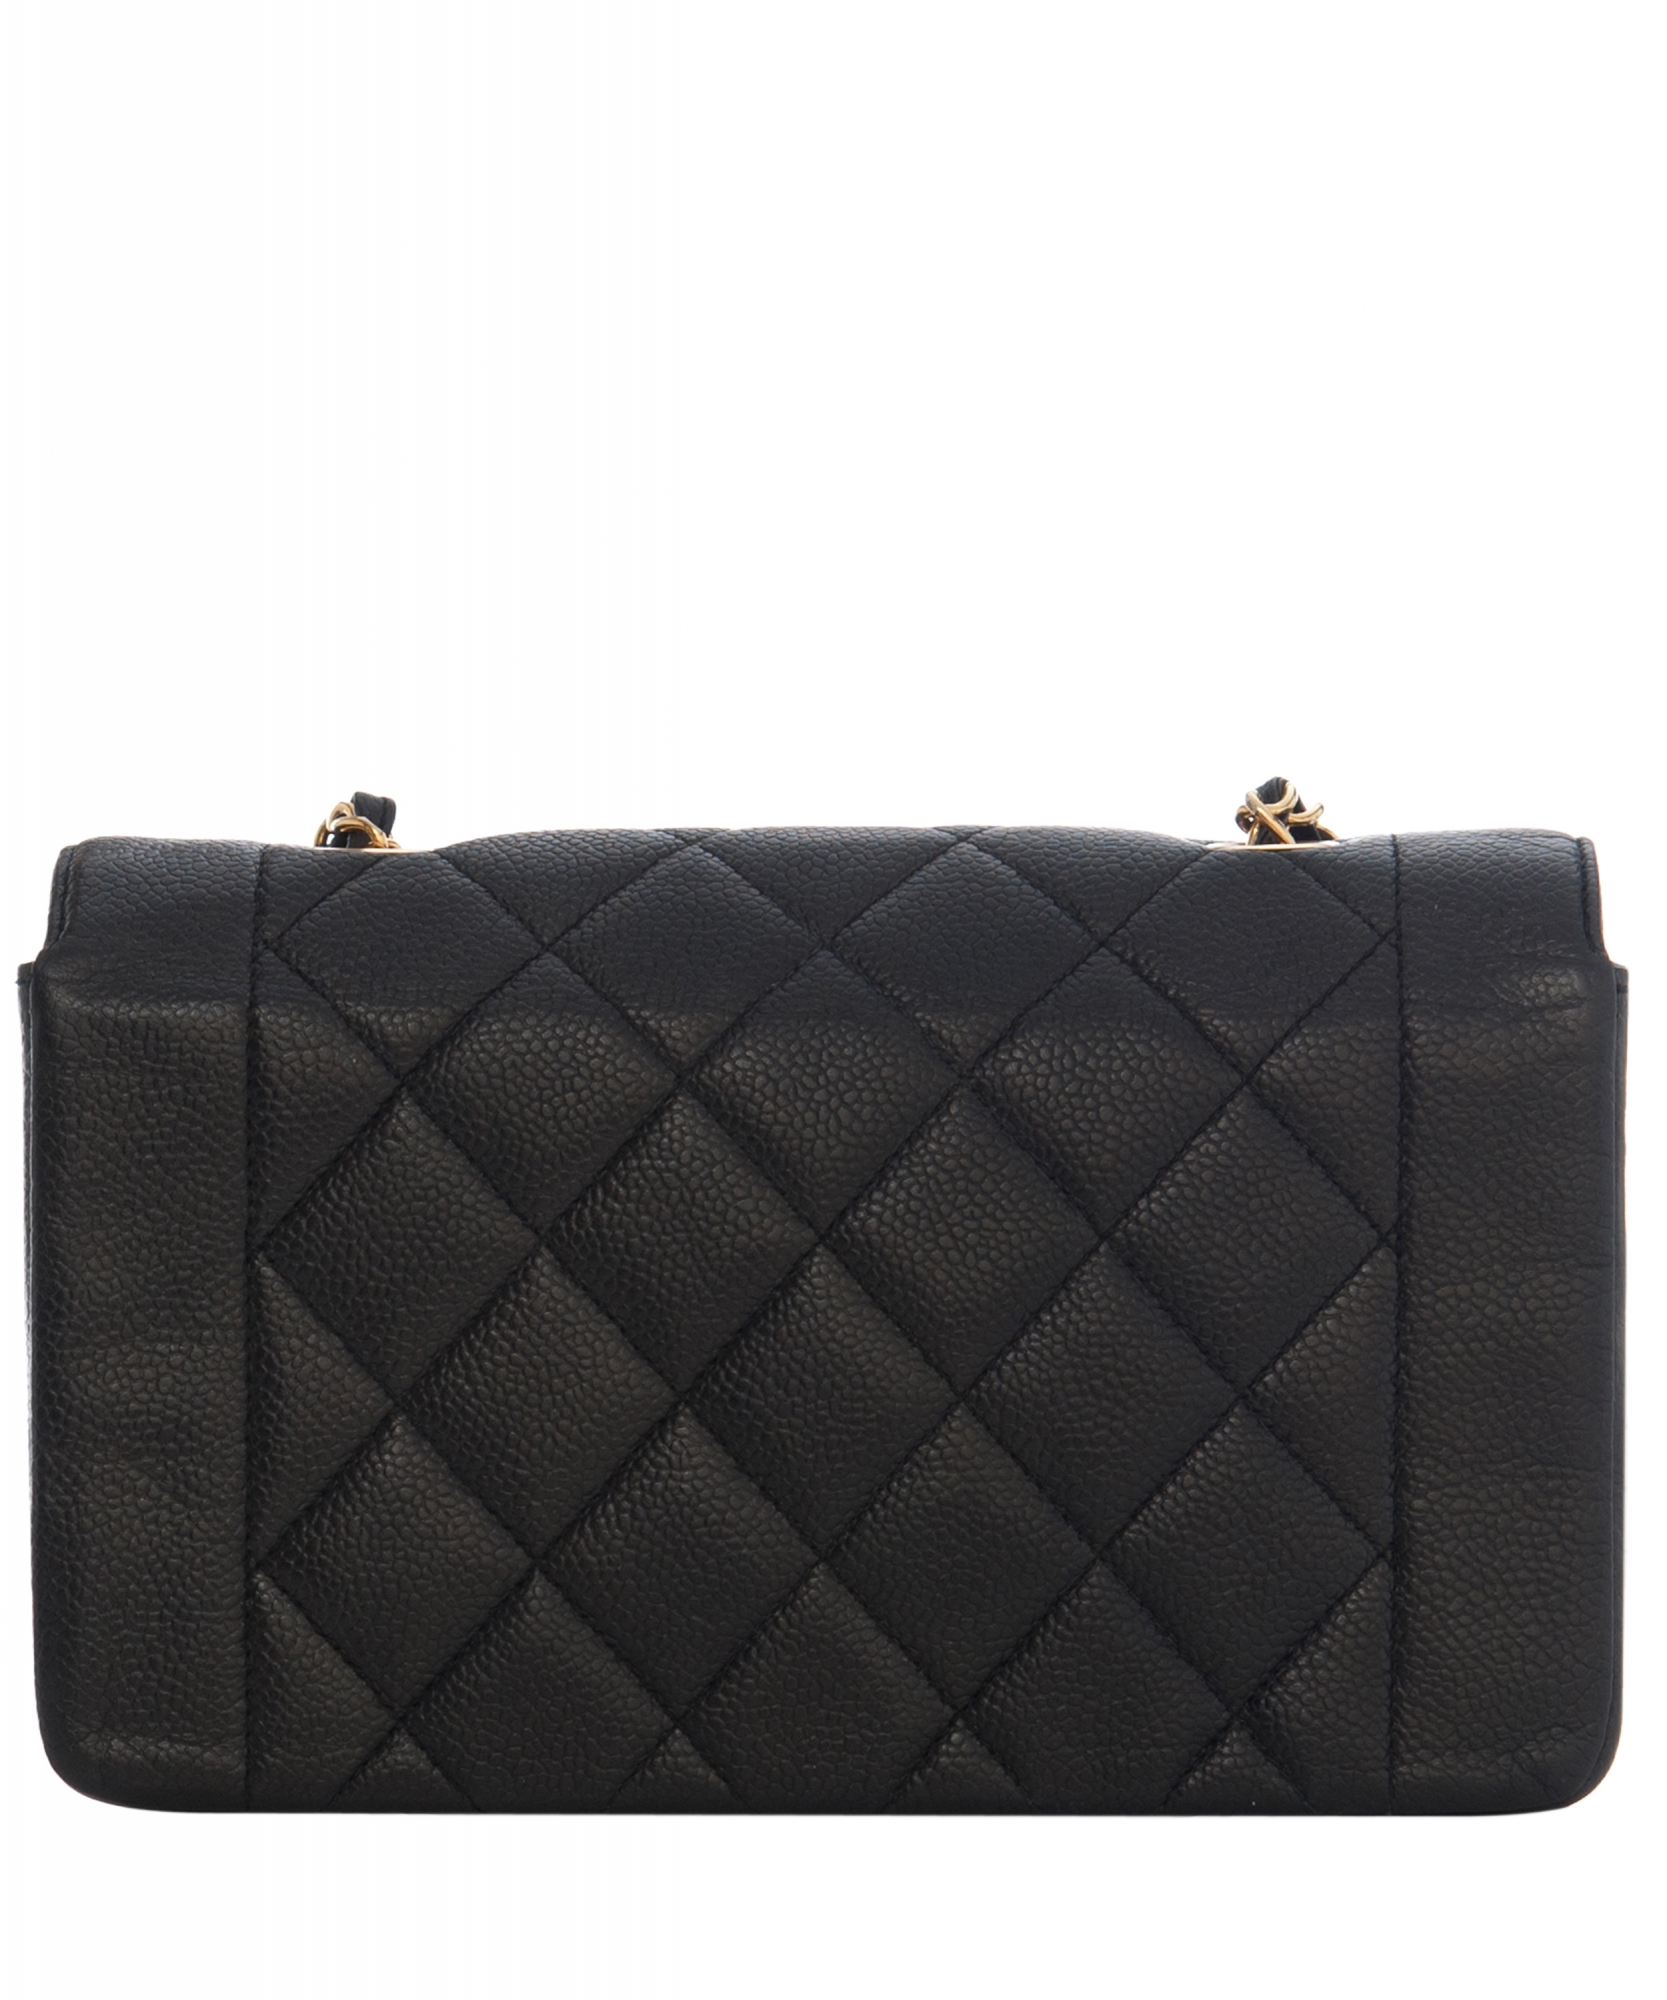 130cdf309ed629 Chanel Classic Flap Cow Leather Crossbody Bag M62584 | Stanford ...